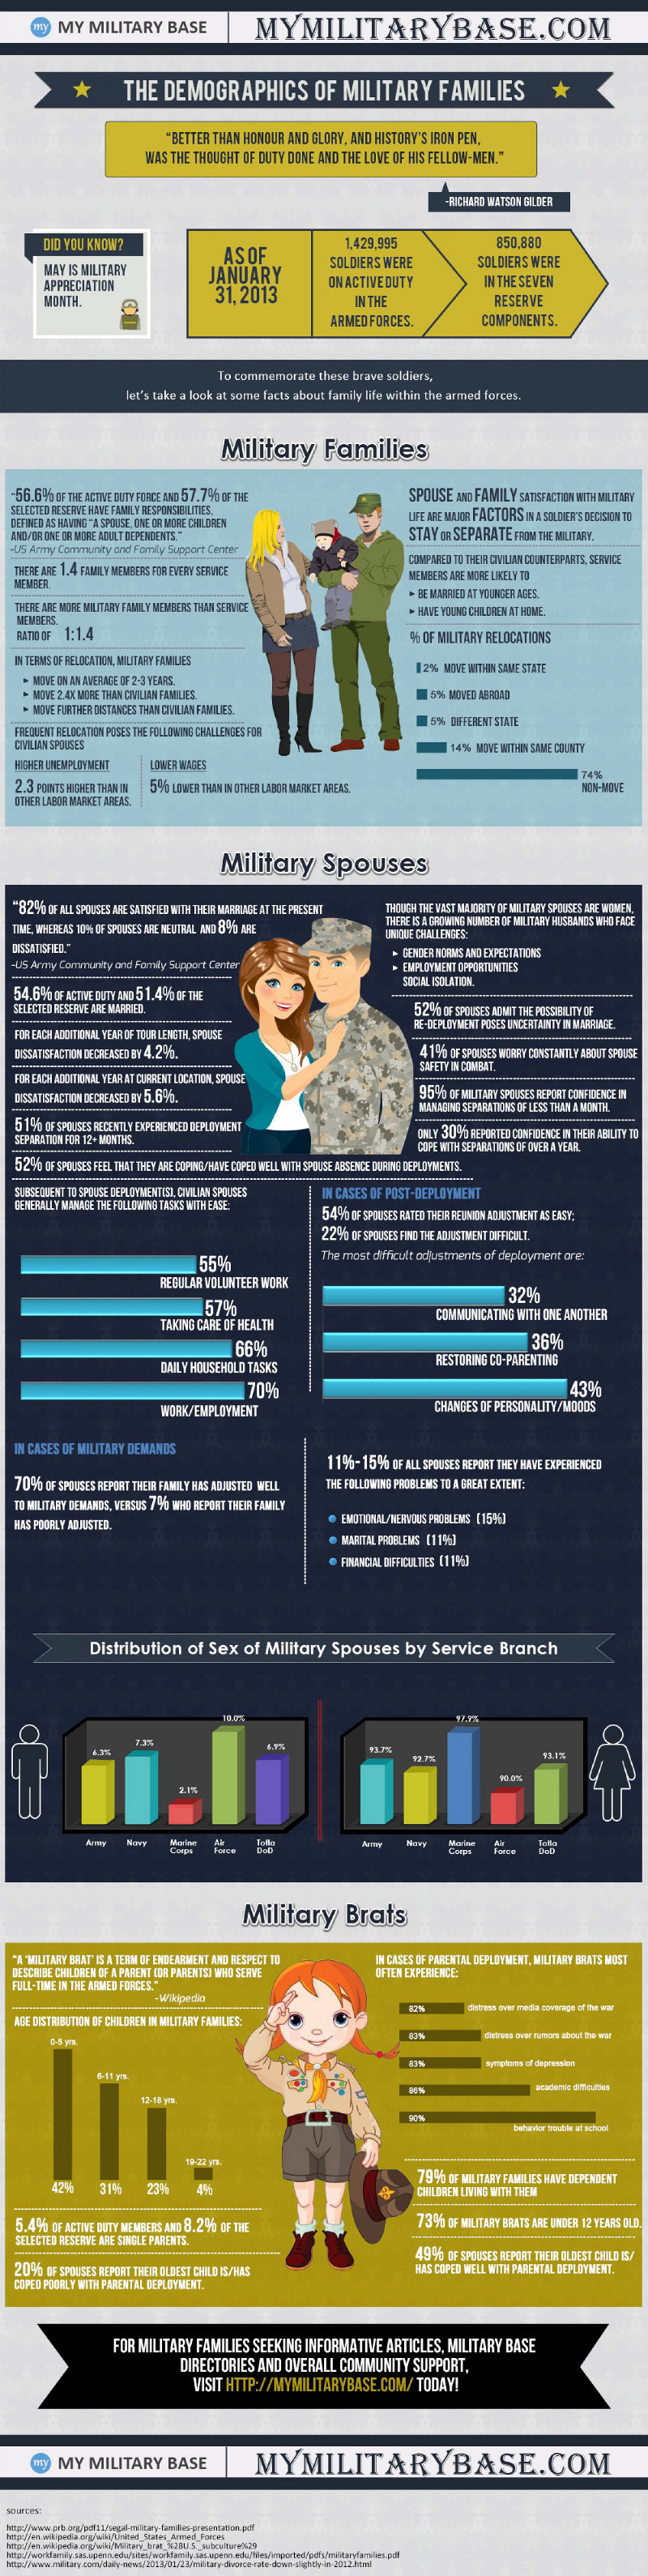 Demographics of Military Families